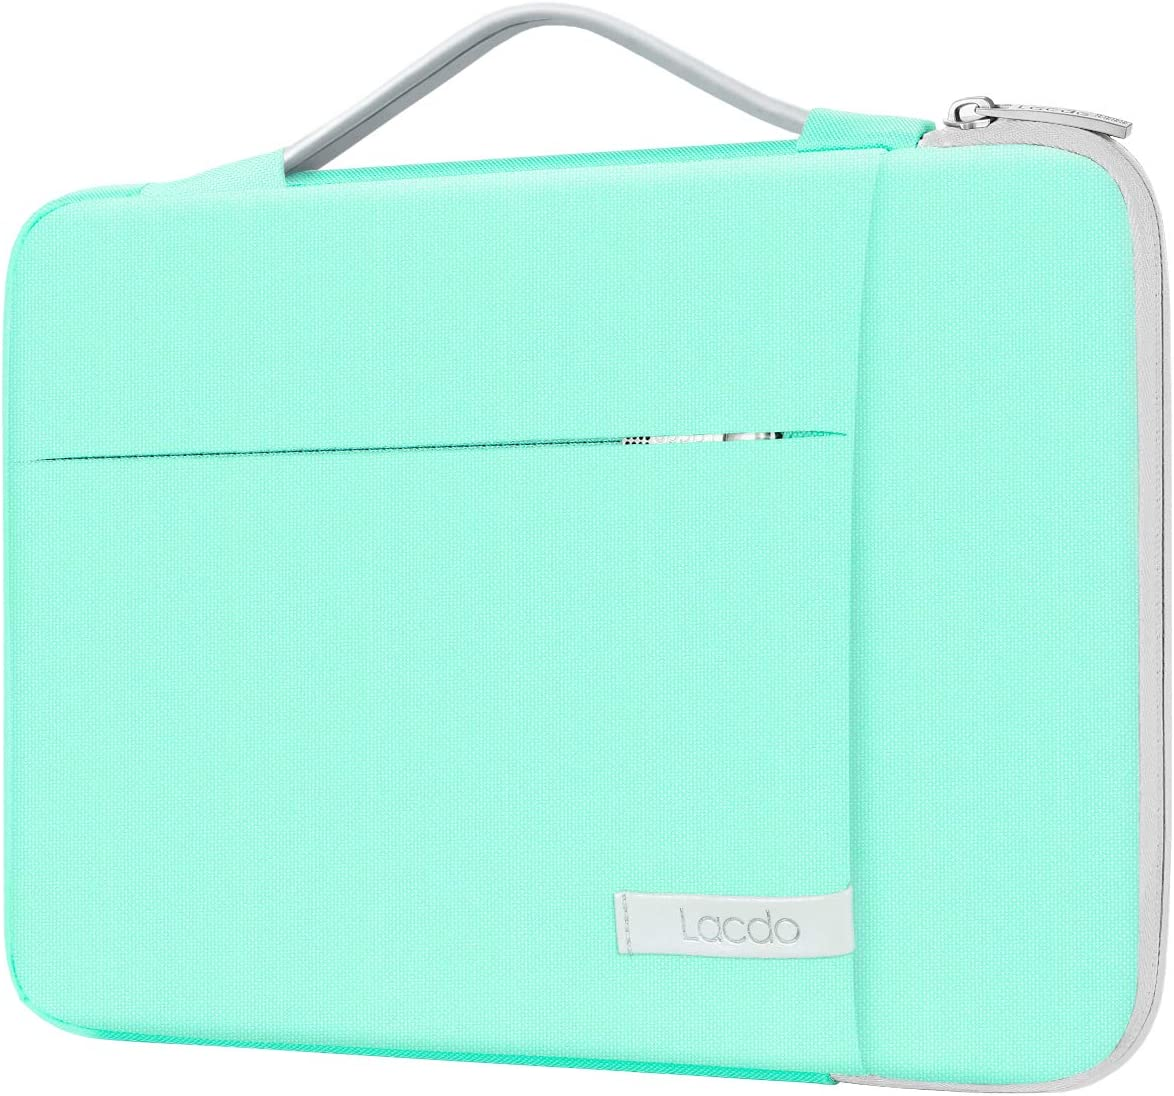 """Lacdo 360° Protective 14 Inch Laptop Sleeve Computer Case Portable Bag for Dell Inspiron 14 5481 / HP Stream 14"""" / Acer Spin 3 / ASUS L402YA / HP Acer Chromebook 14, S330 / Flex 14 Notebook, Green"""